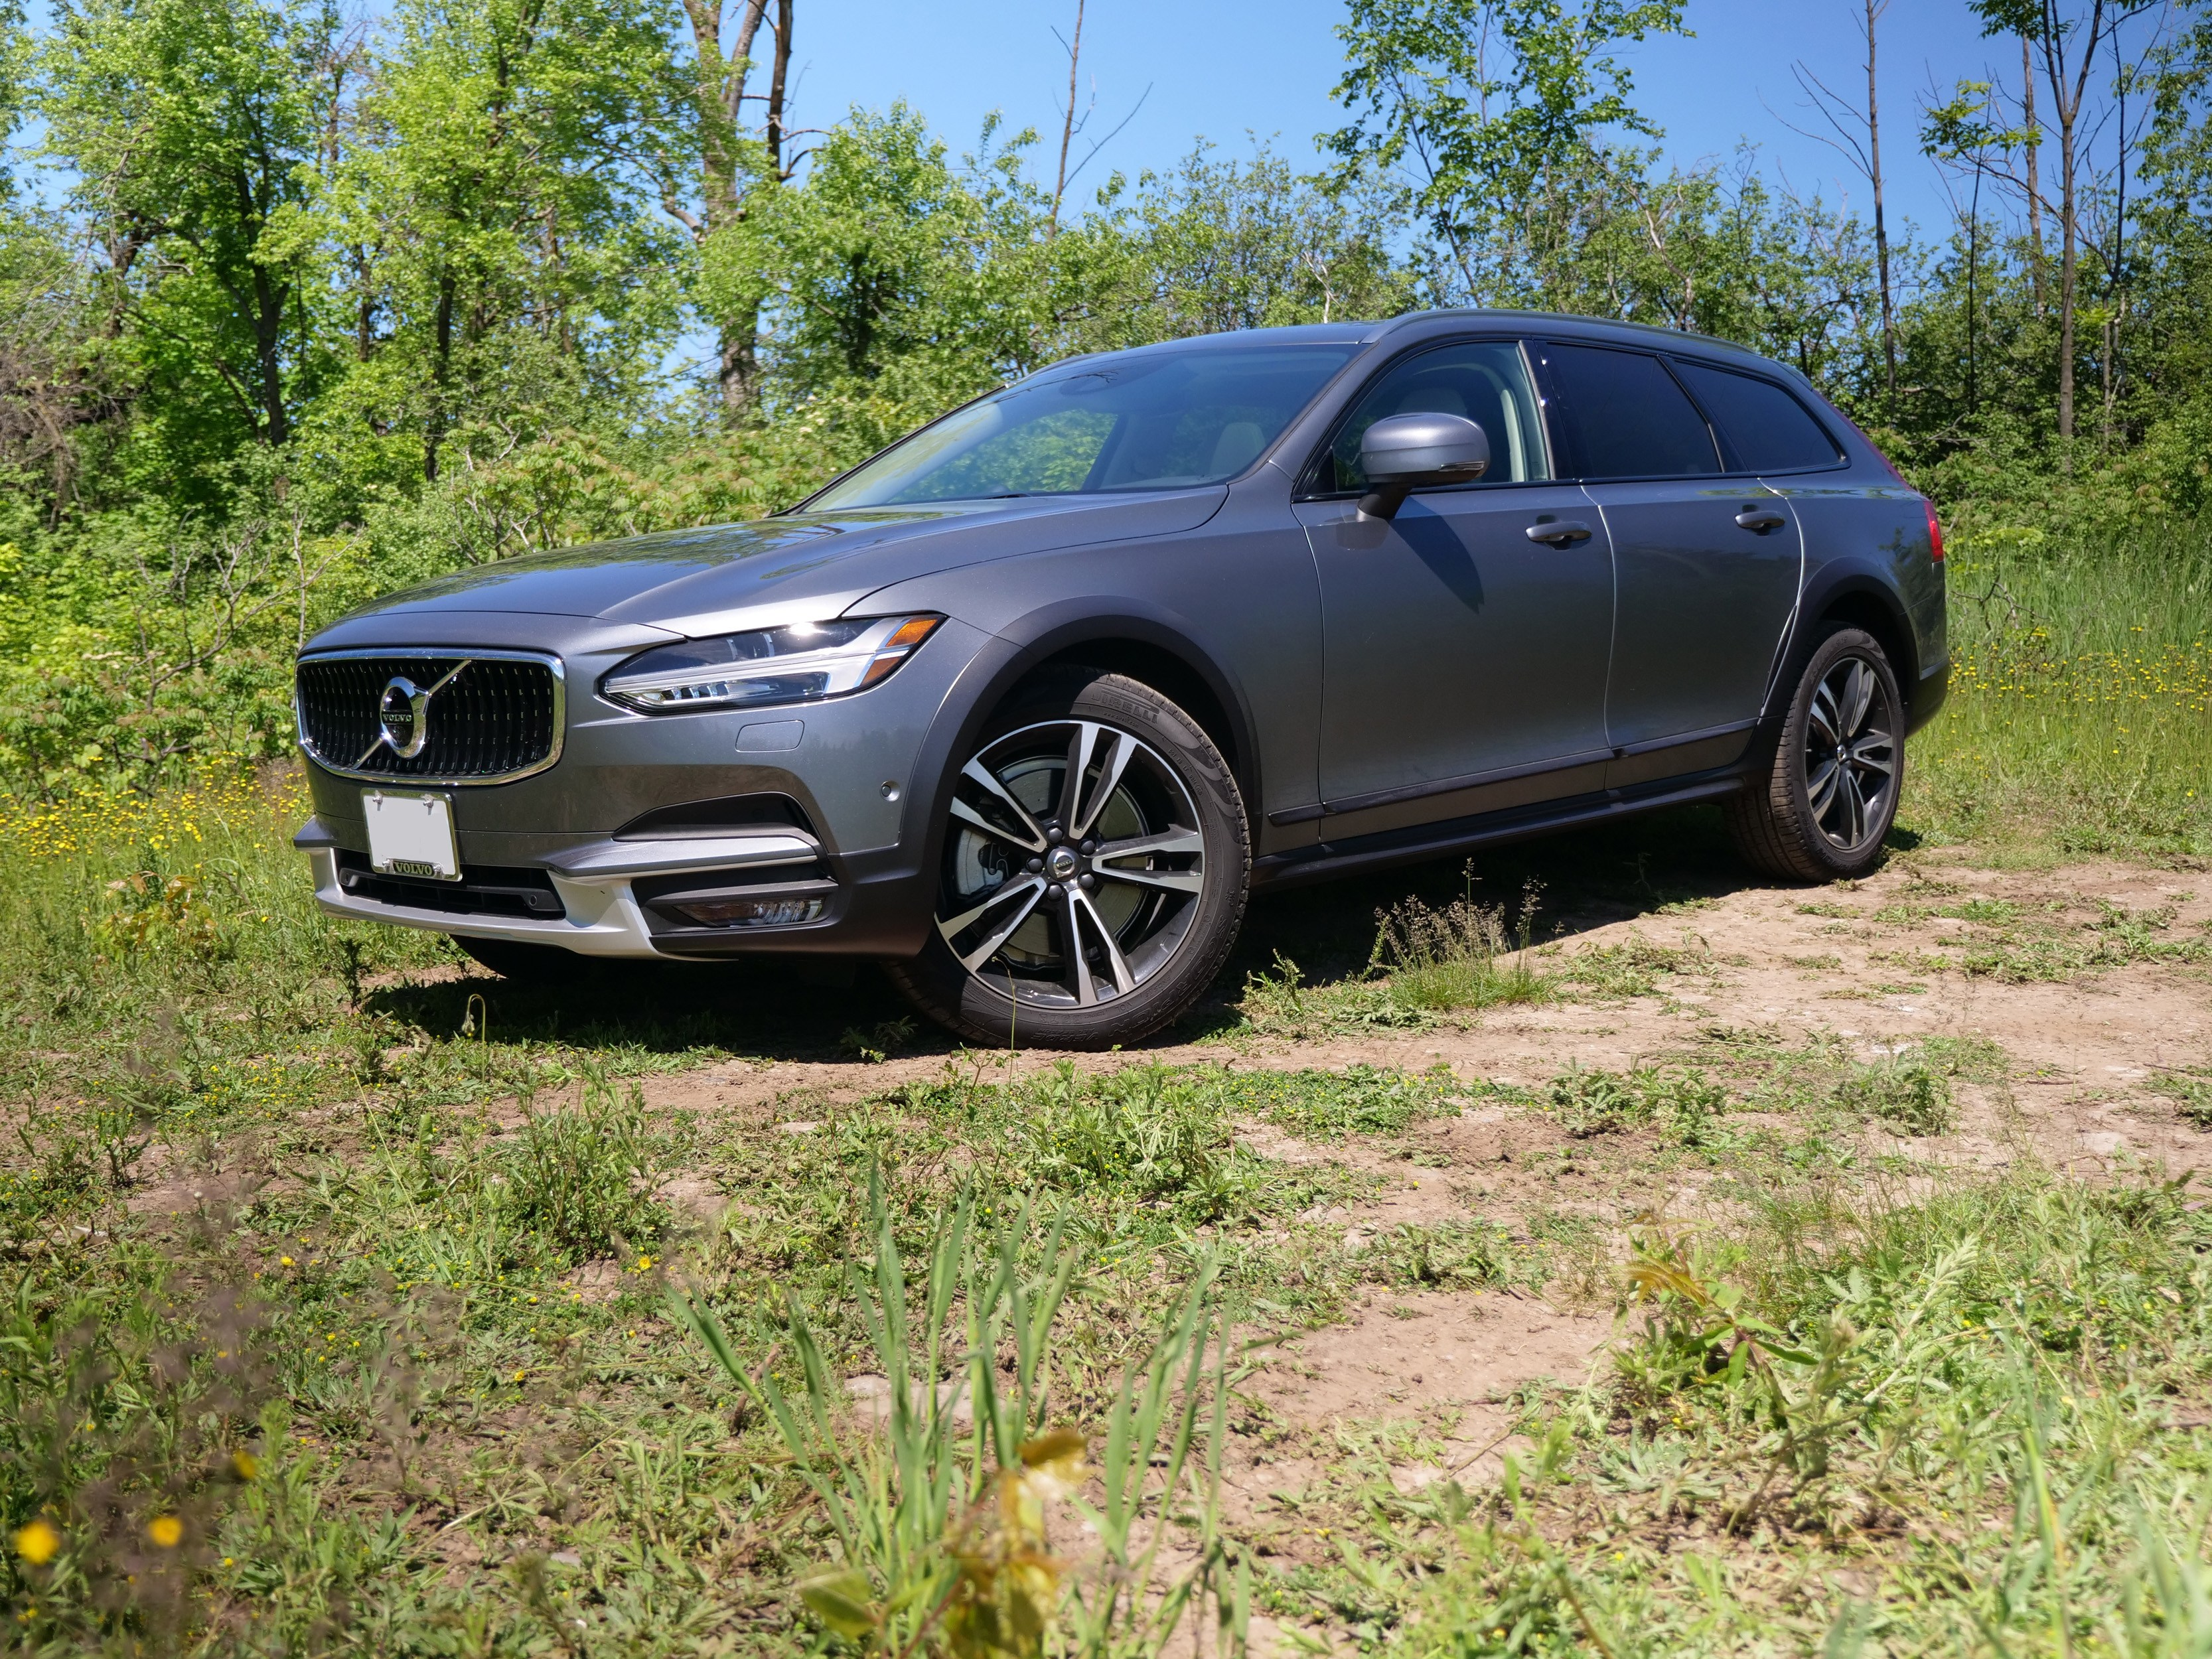 Who Owns Volvo >> 2017 Volvo V90 Cross Country Review - AutoGuide.com